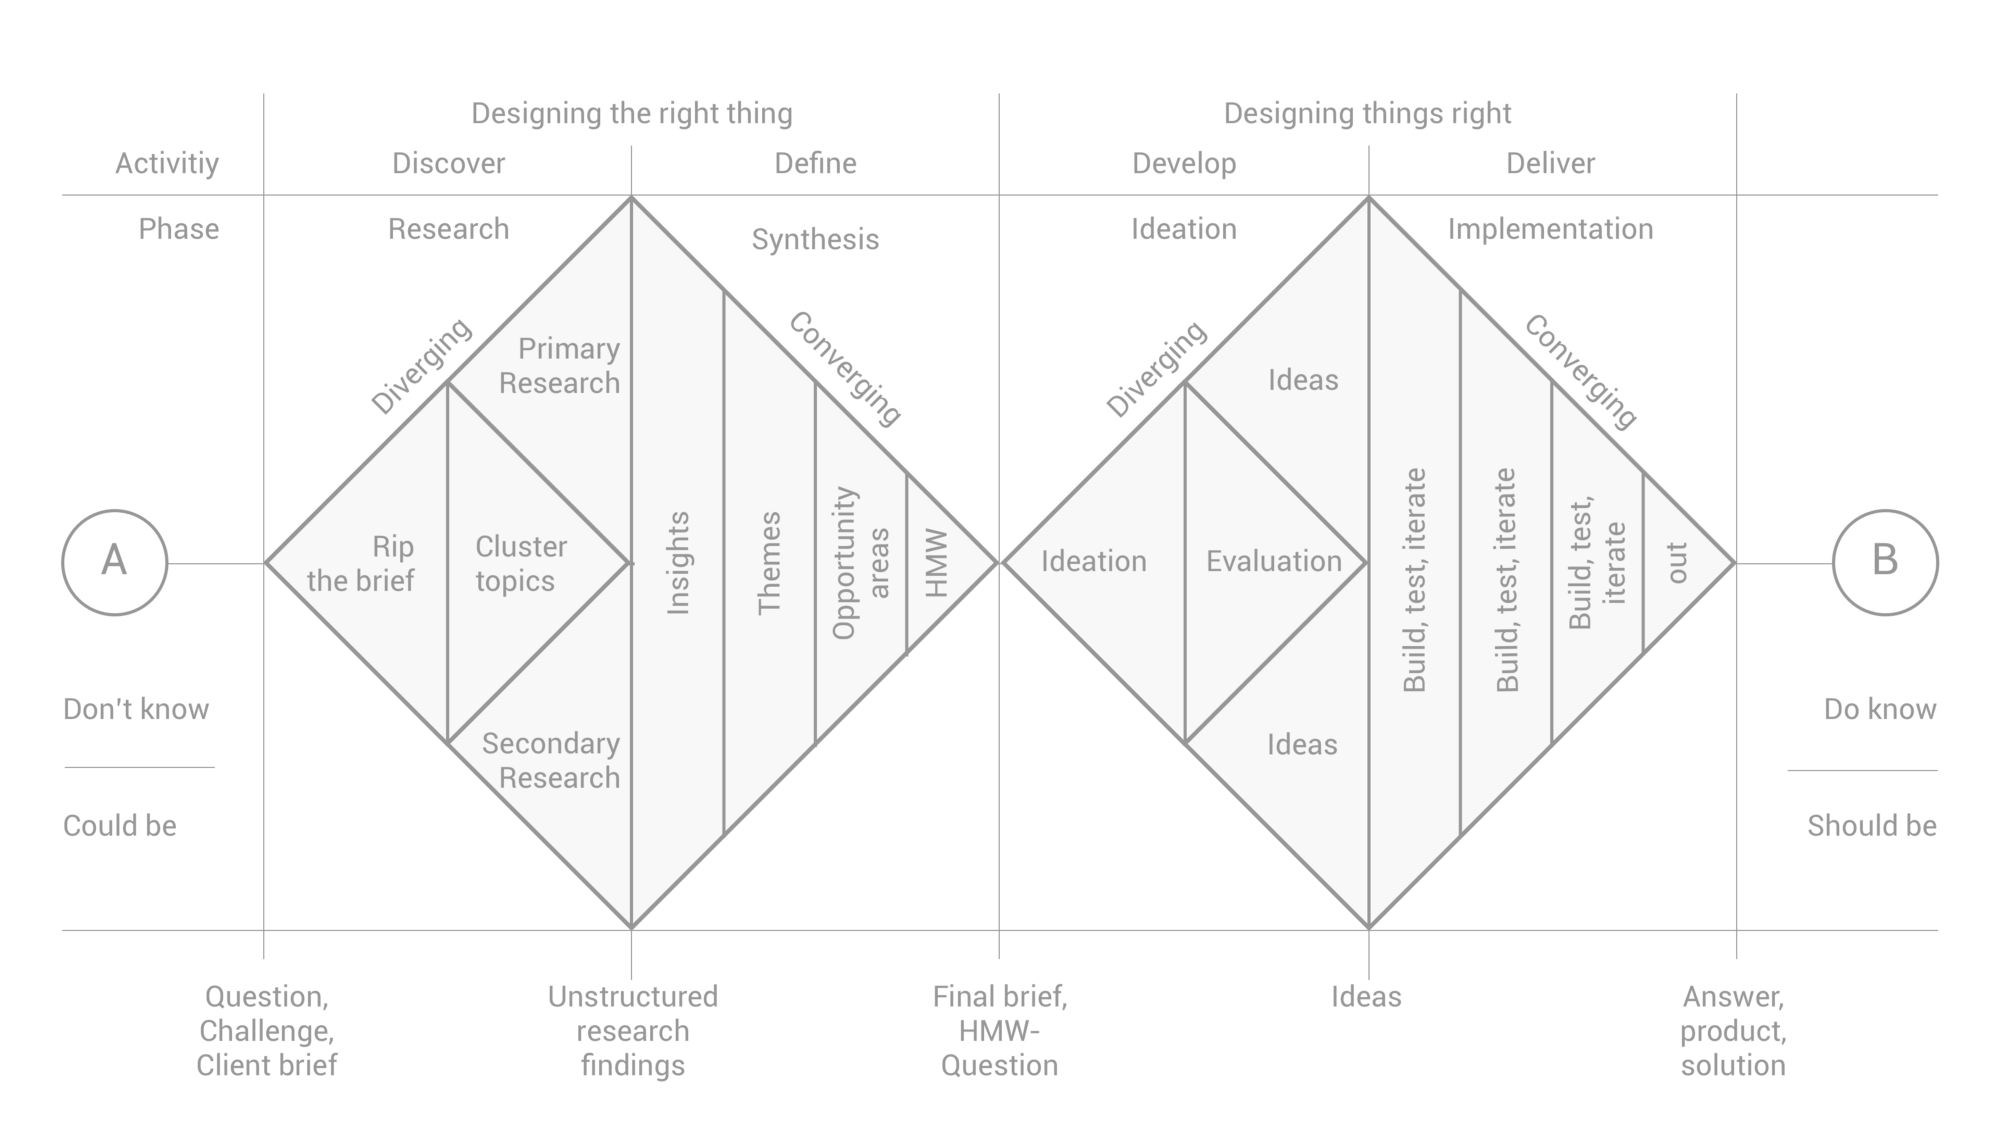 how to apply a design thinking hcd ux or any creative process how to apply a design thinking hcd ux or any creative process from scratch